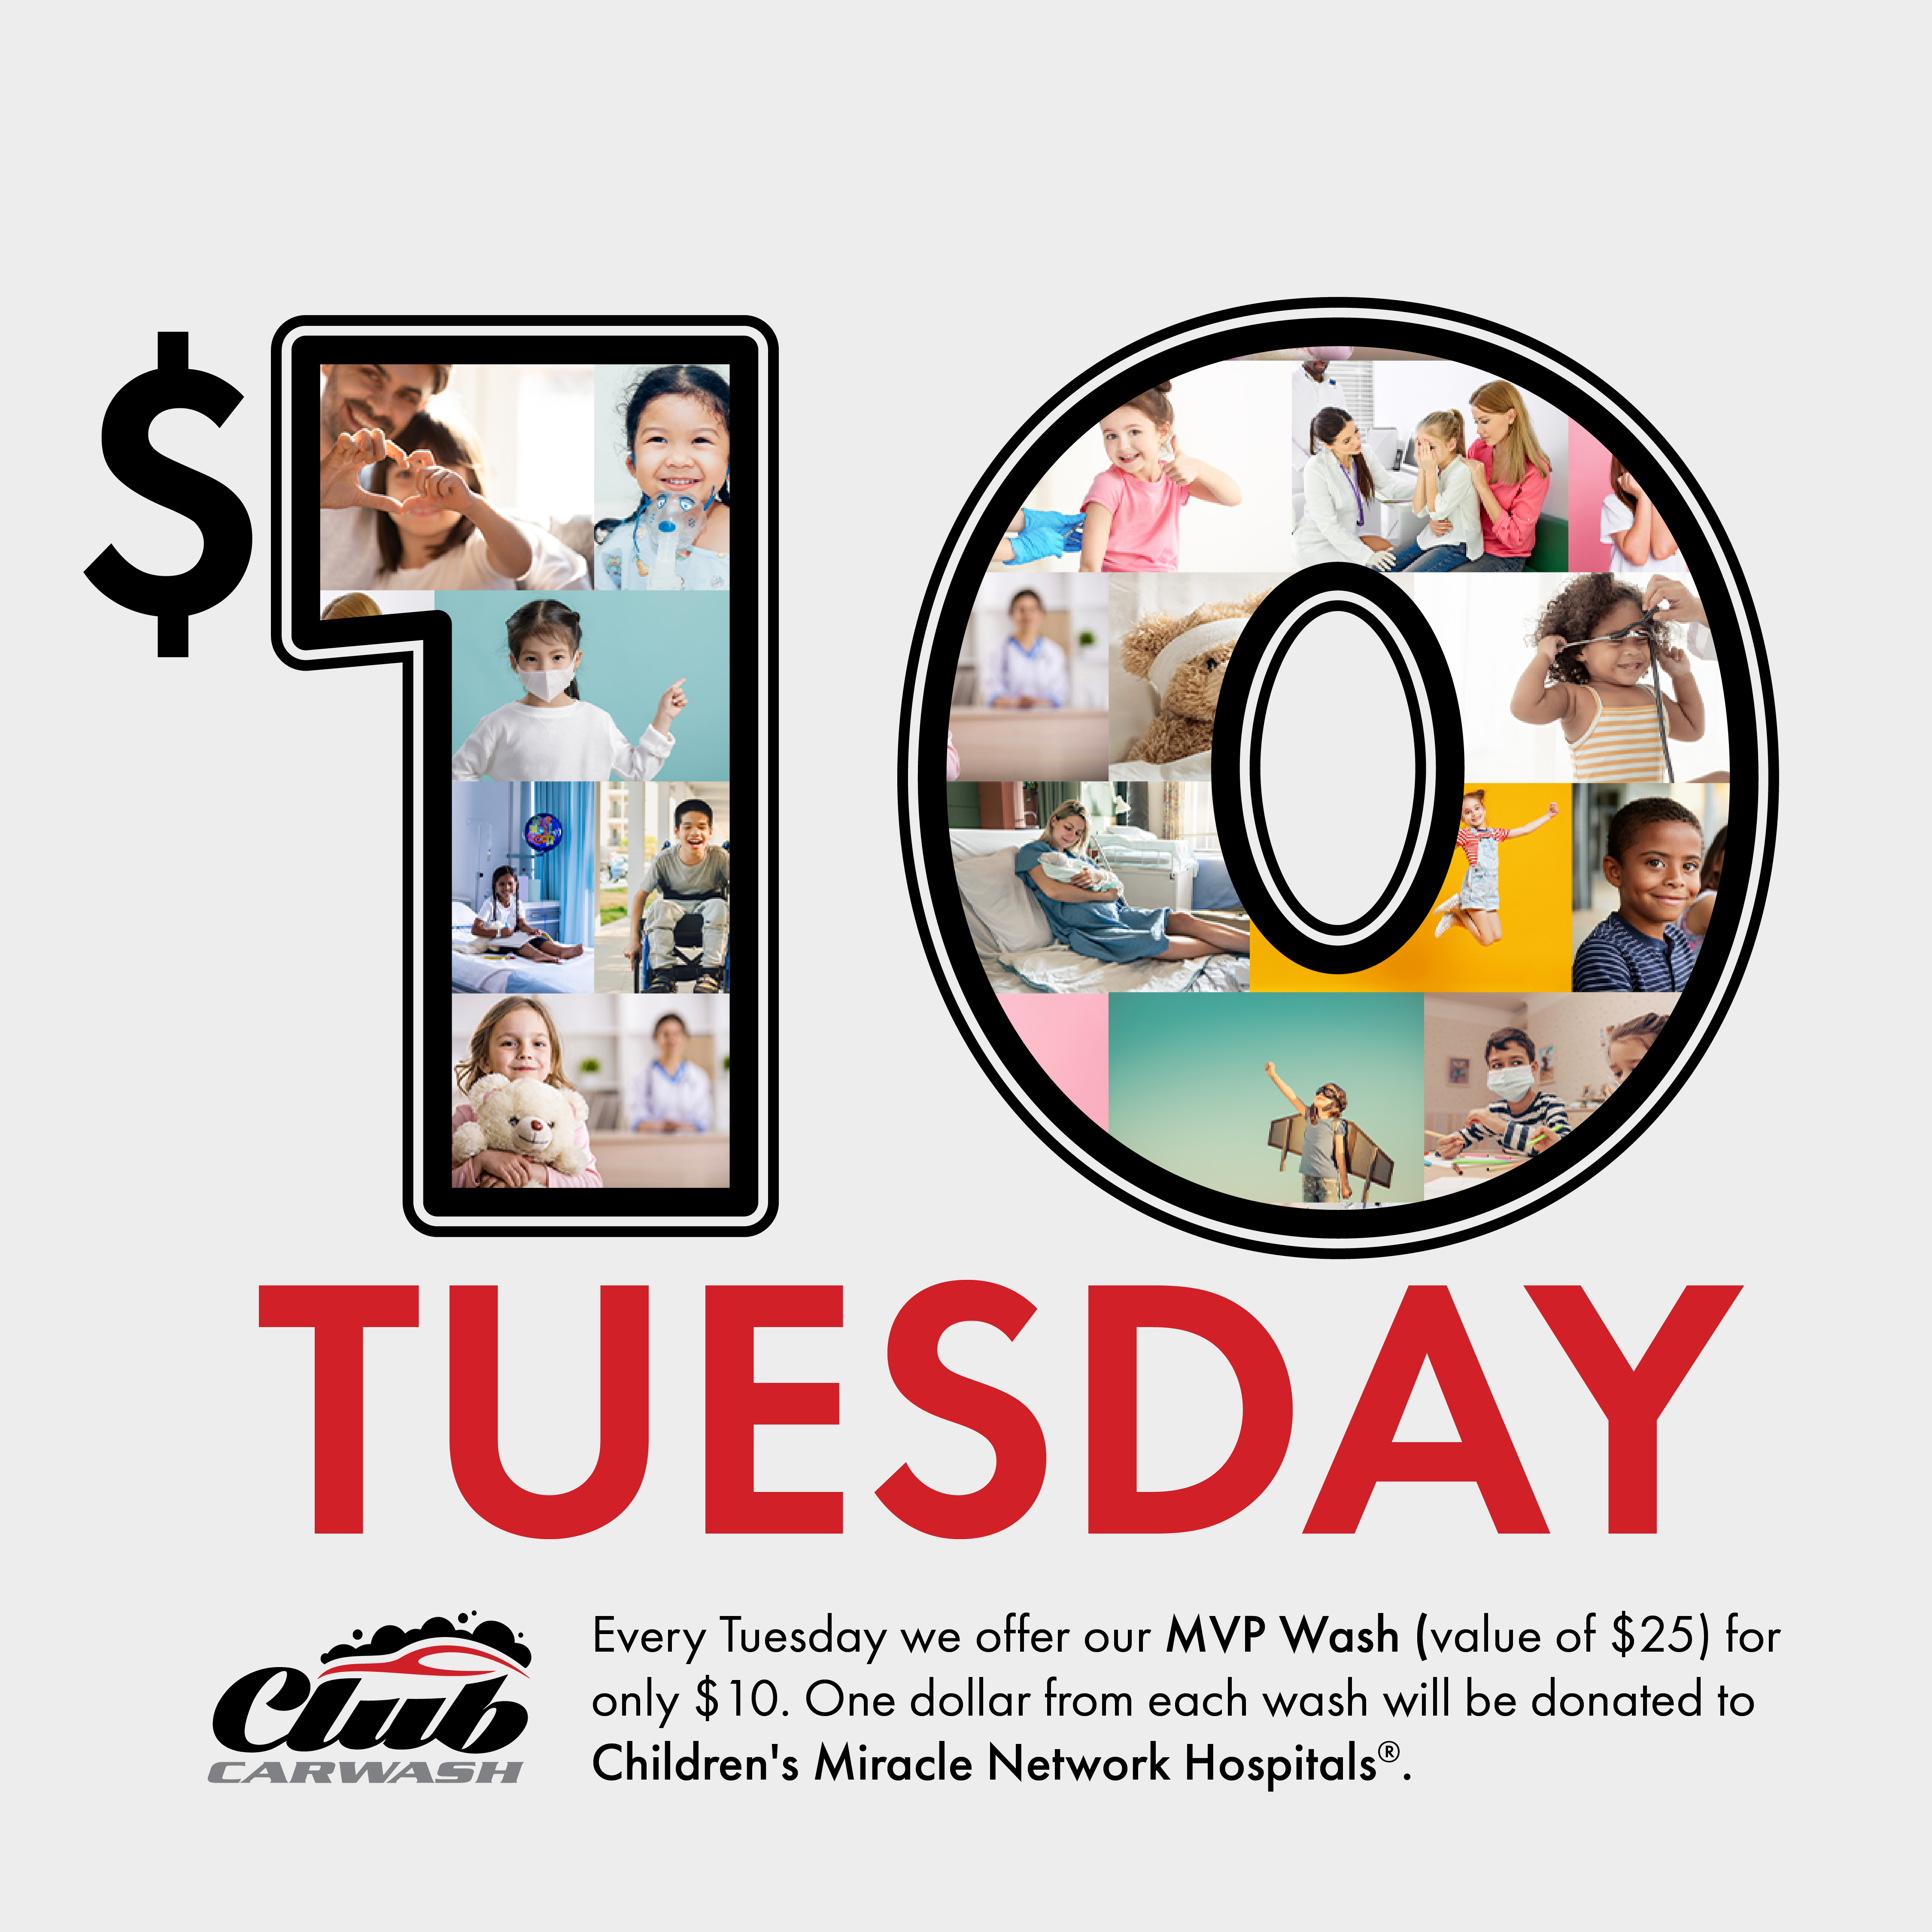 10 dollar tuesdays offers our MVP wash for only 10 dollars (25 dollar value) and 1 dollar is donated to childrens miracle network